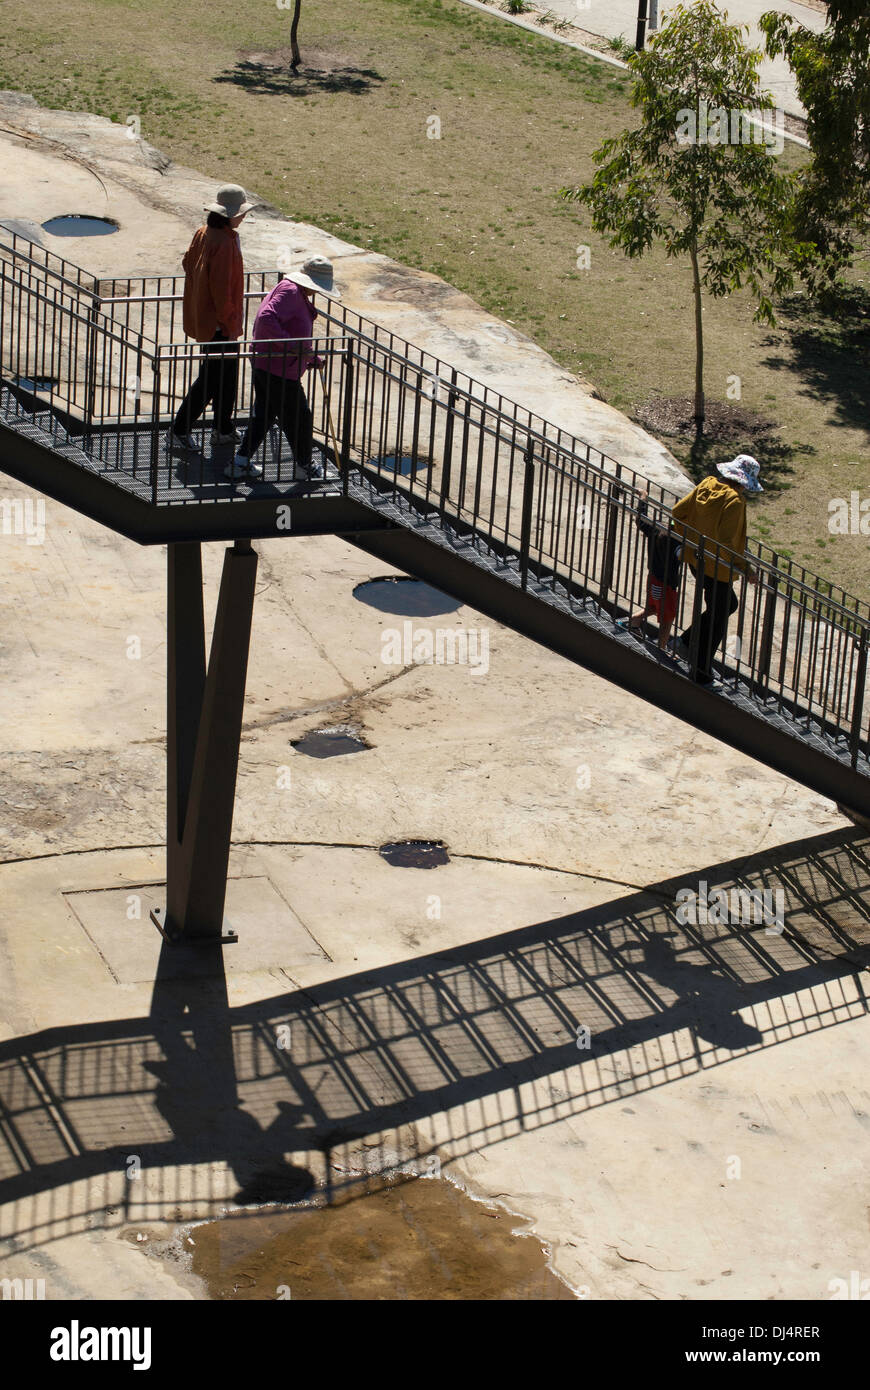 People Walking Down Outdoor Metal Staircase At Ballast Point Park, Sydney,  Australia